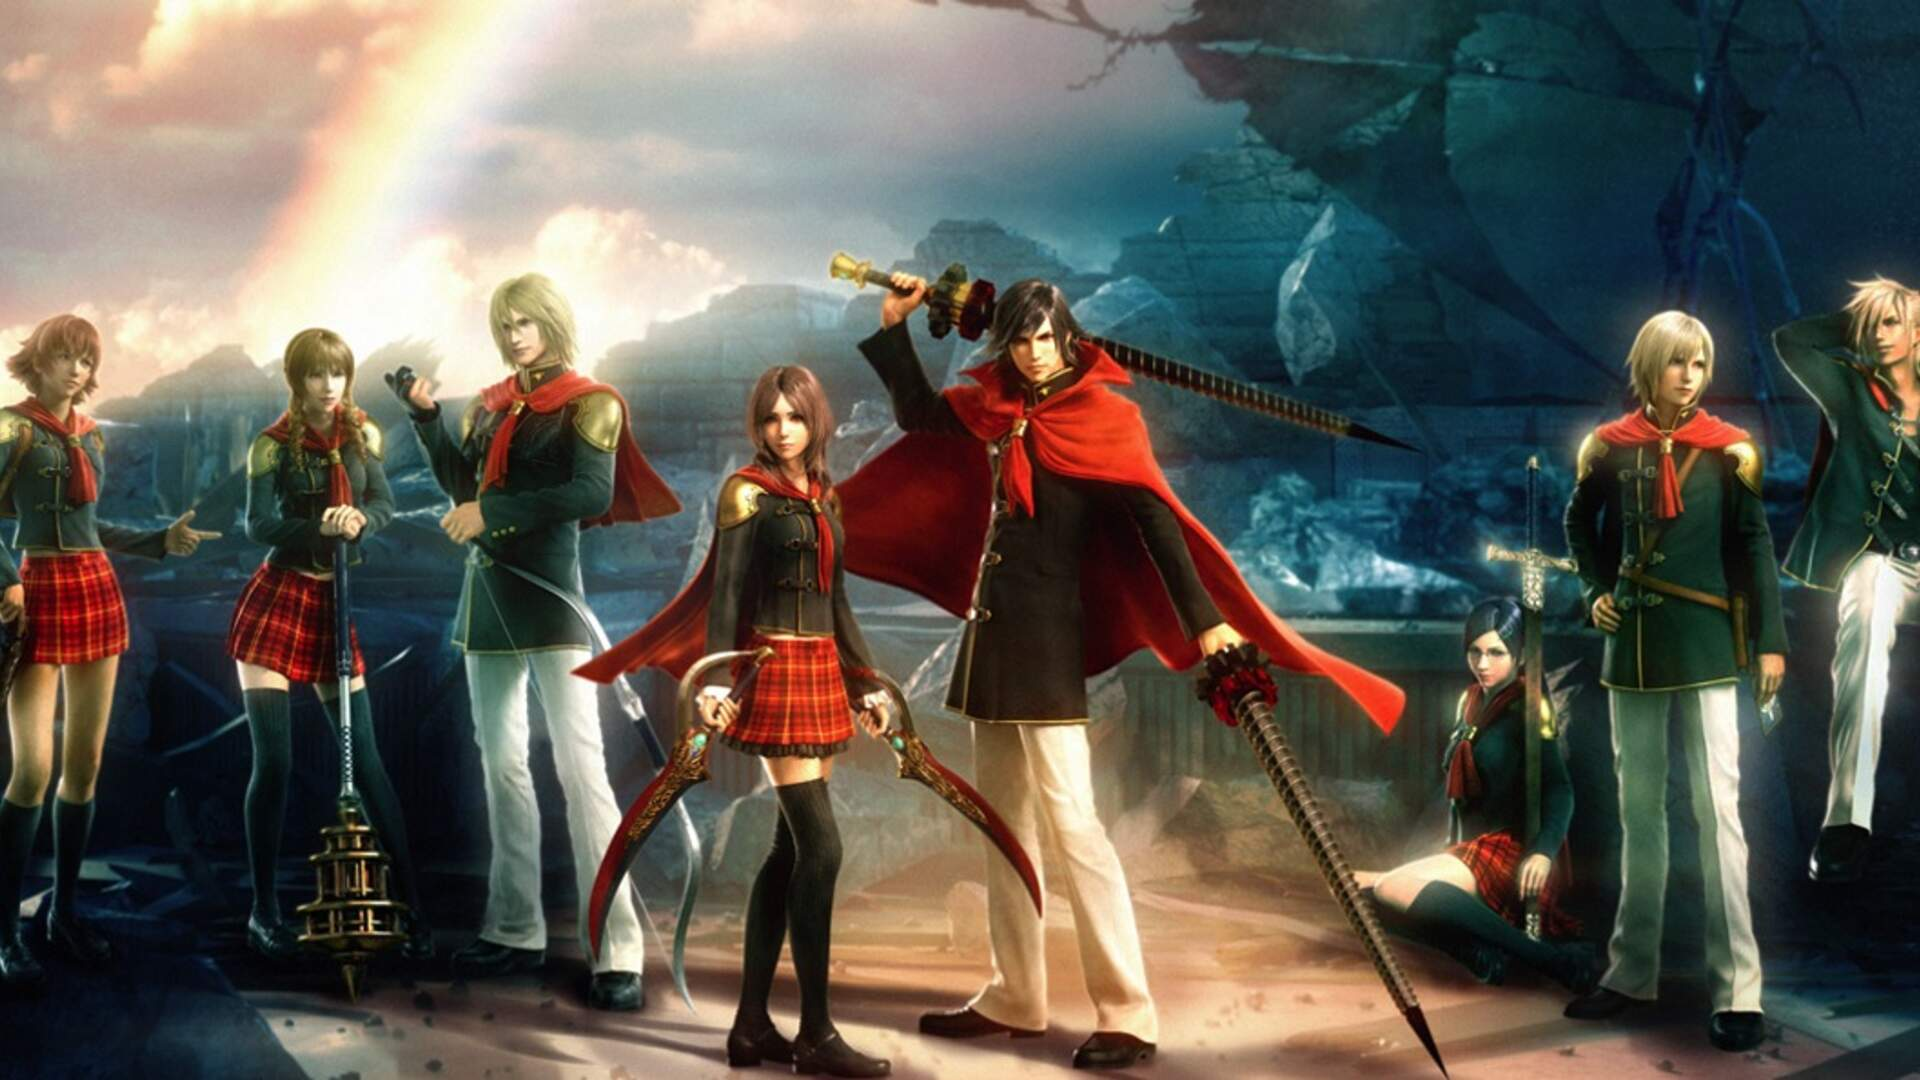 Is Agito What Final Fantasy Fans Want?